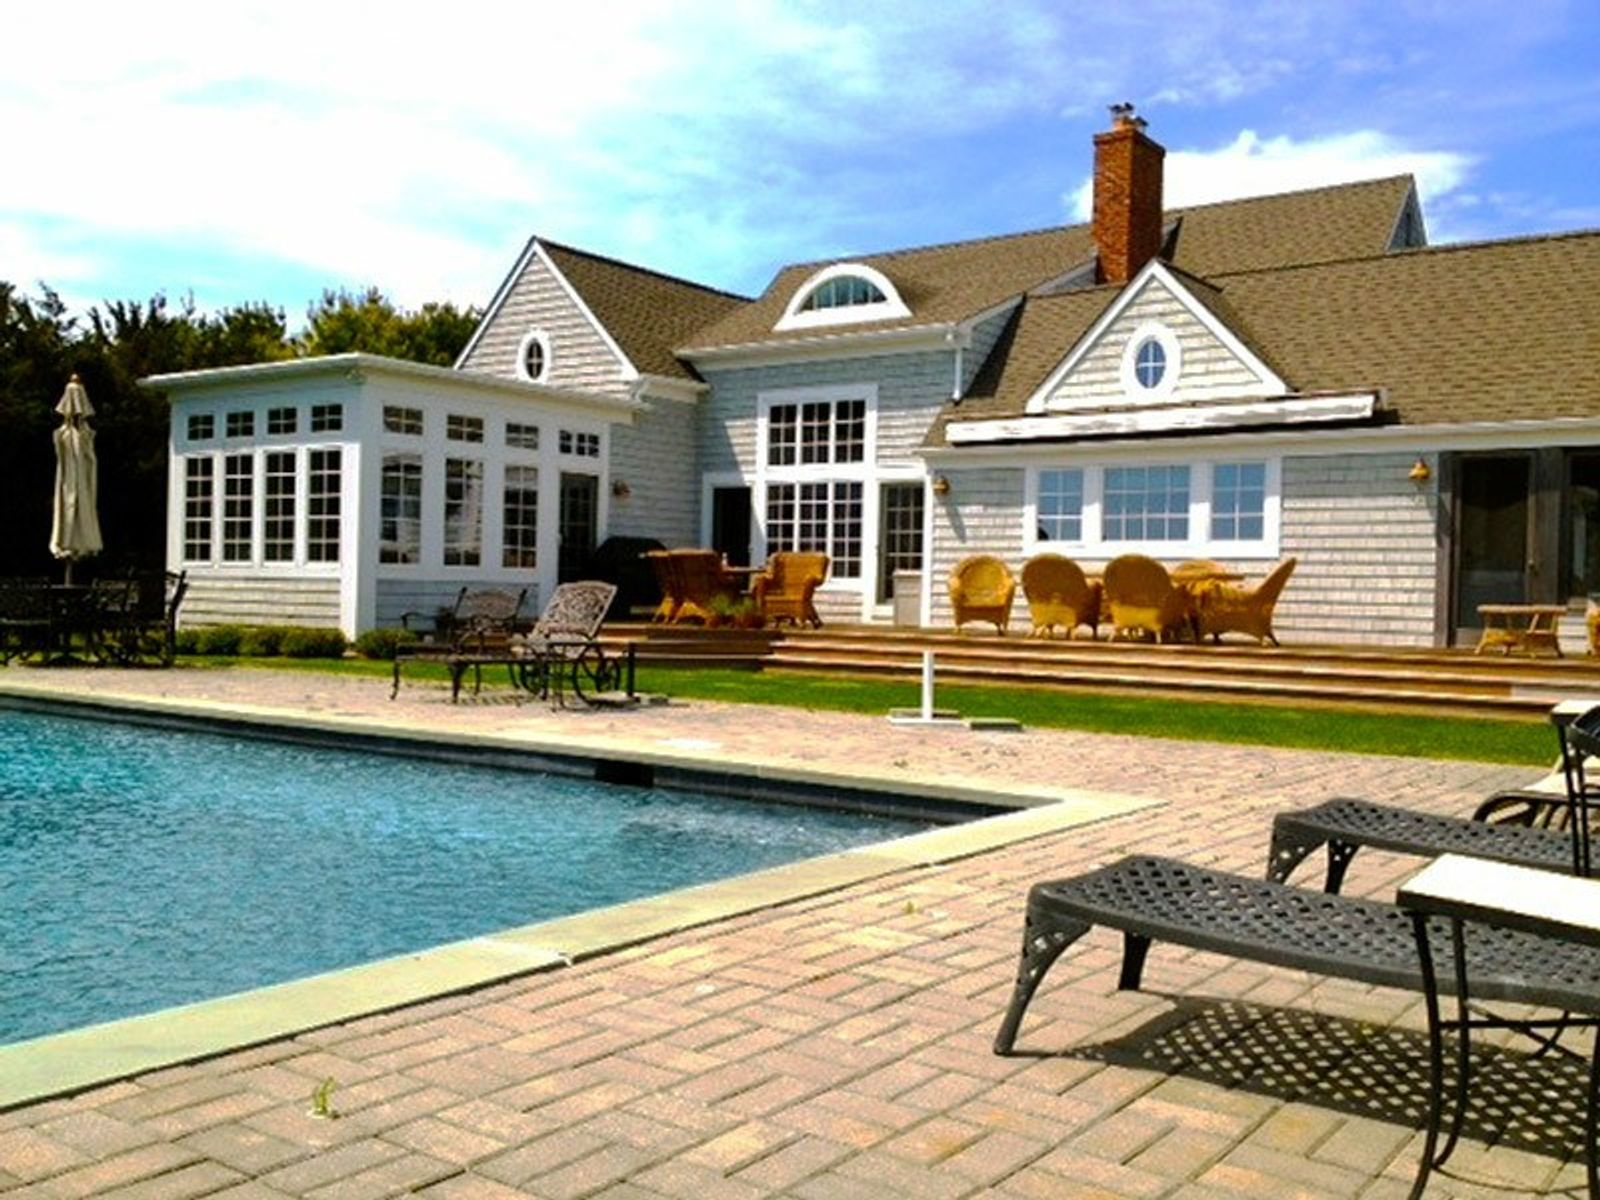 Bridgehampton Vistas, Bridgehampton NY Single Family Home - Hamptons Real Estate